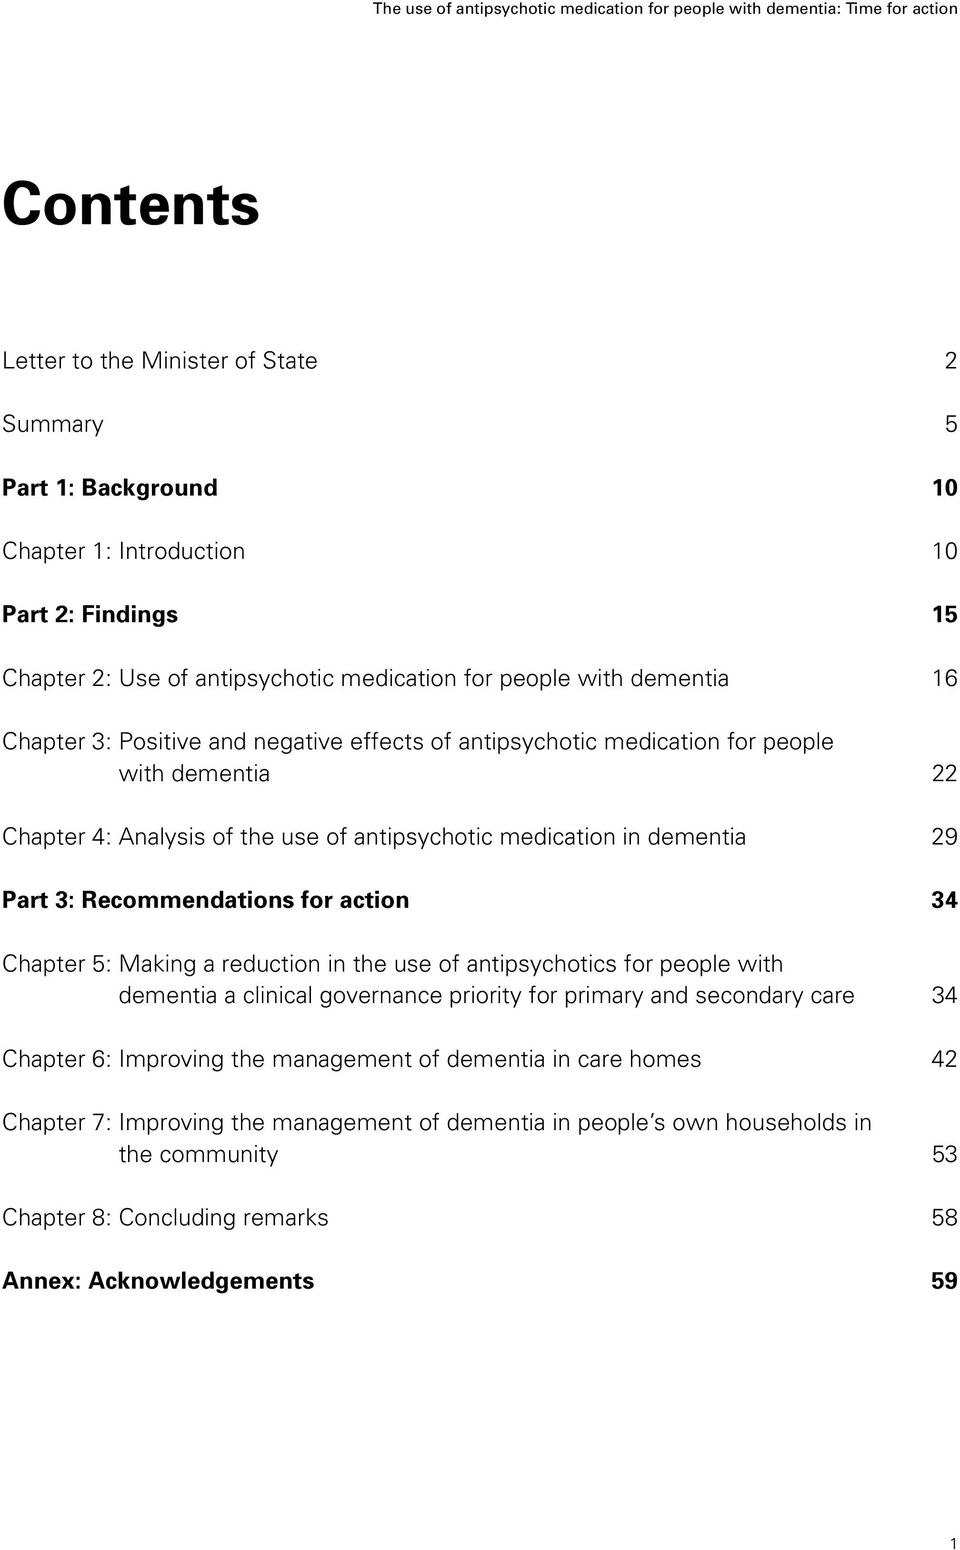 Recommendations for action 34 Chapter 5: Making a reduction in the use of antipsychotics for people with dementia a clinical governance priority for primary and secondary care 34 Chapter 6: